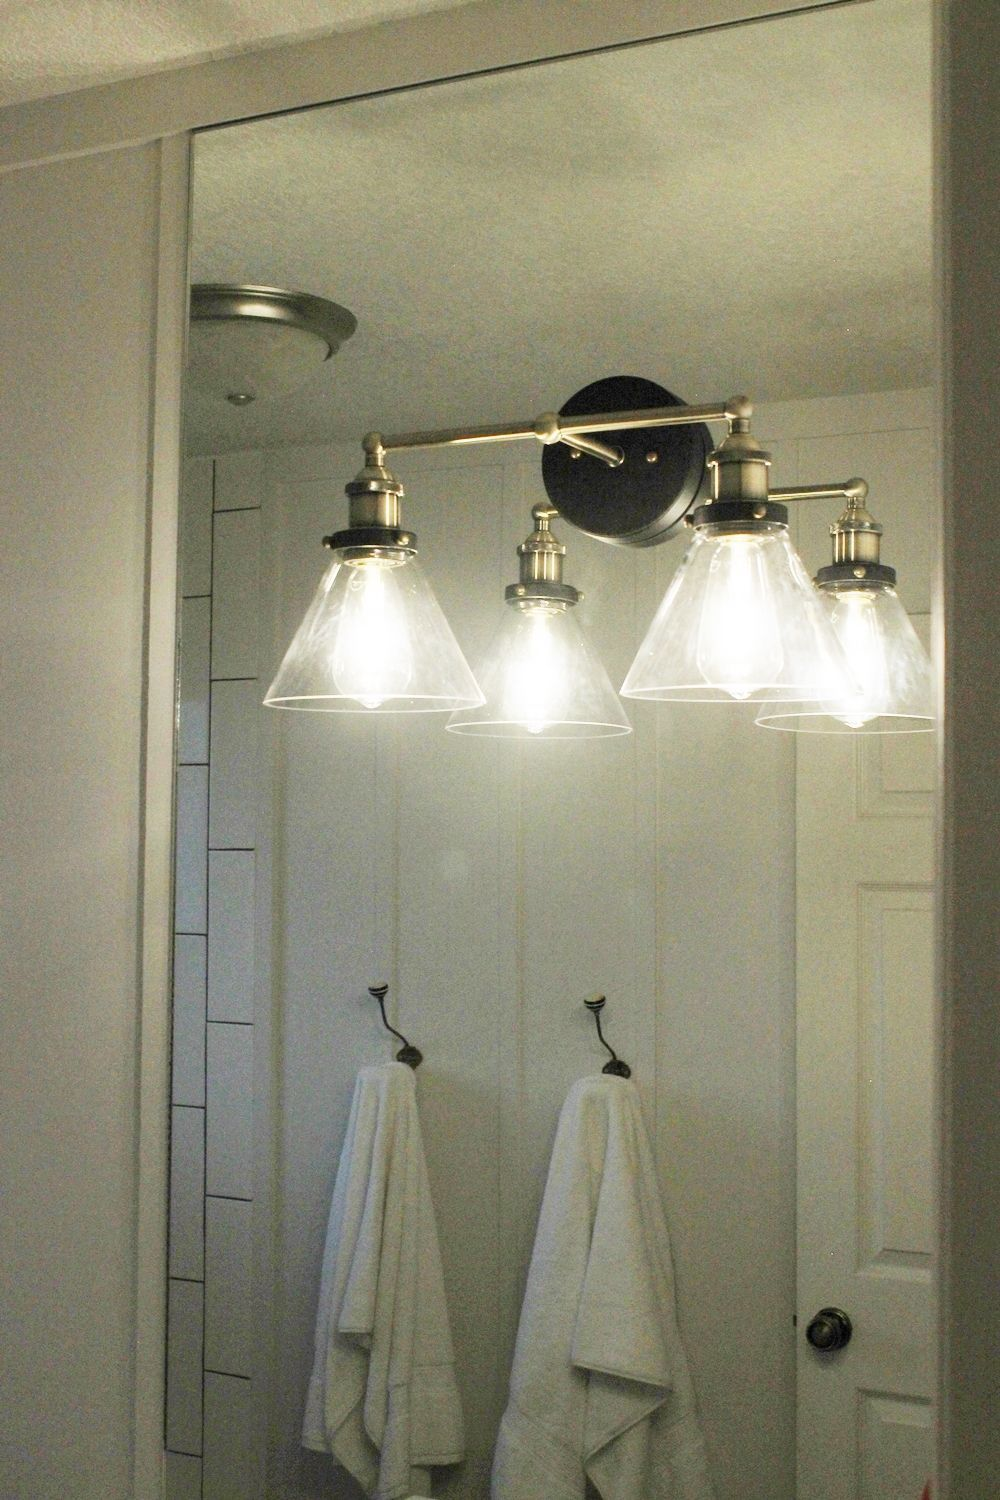 Light Bathroom Mirror Bathroom Vanity Lights Over Mirror House Architecture Design